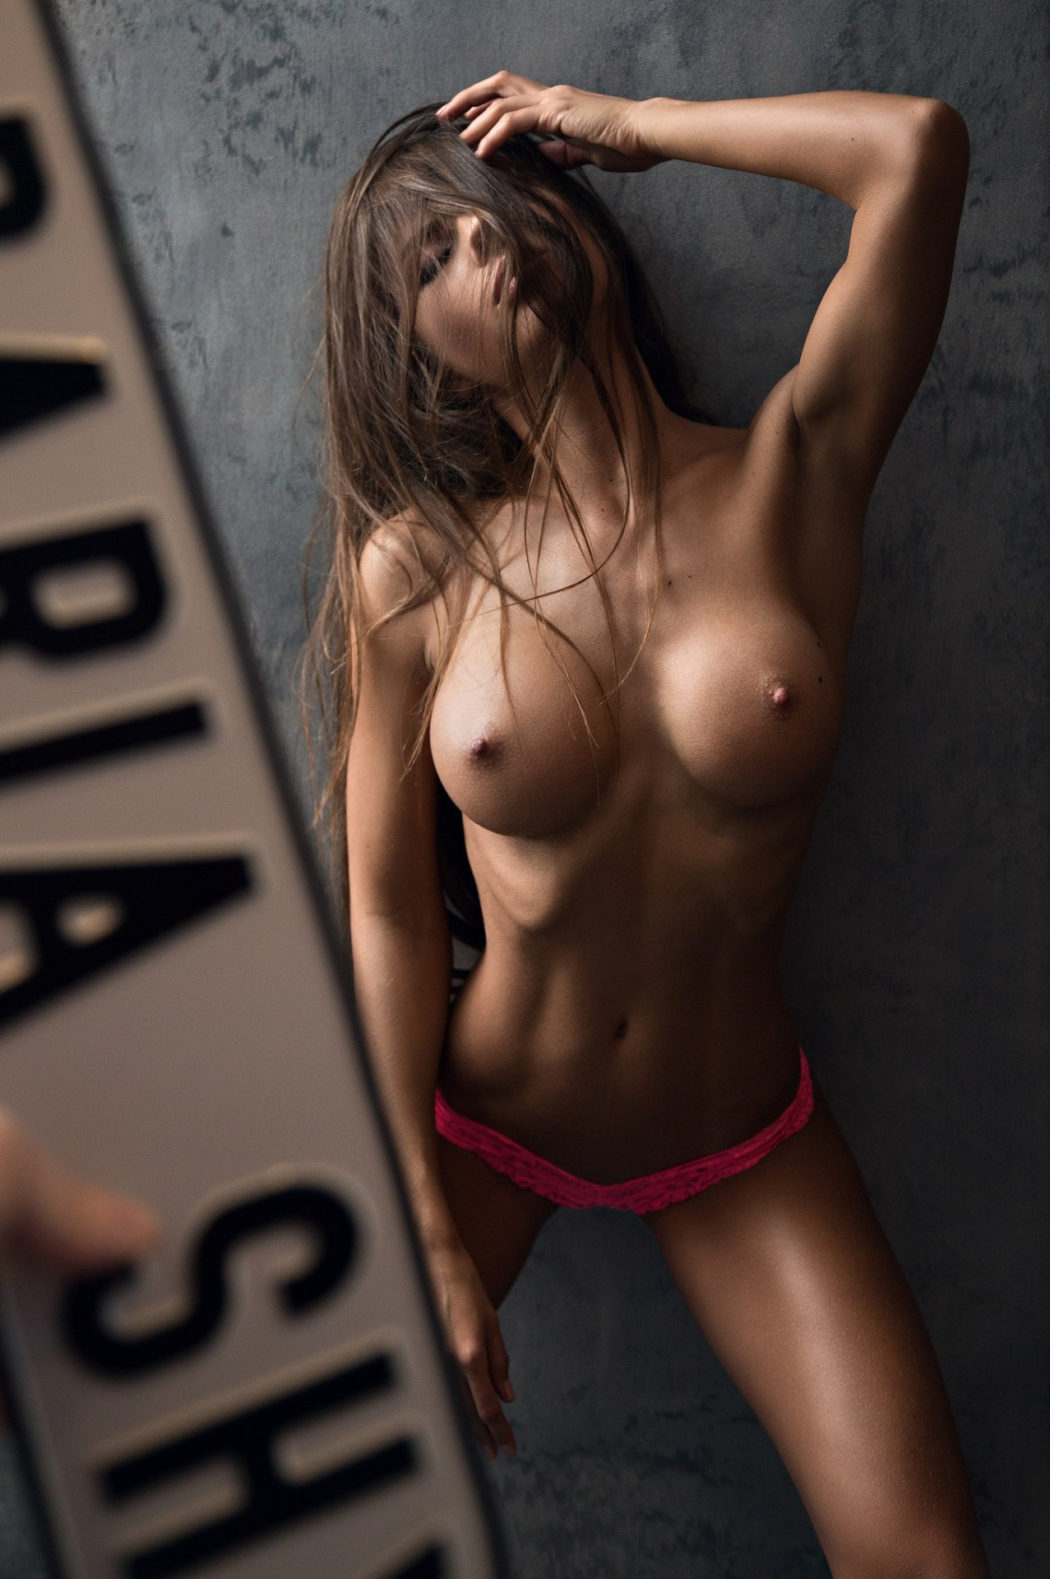 Daria shy topless new images